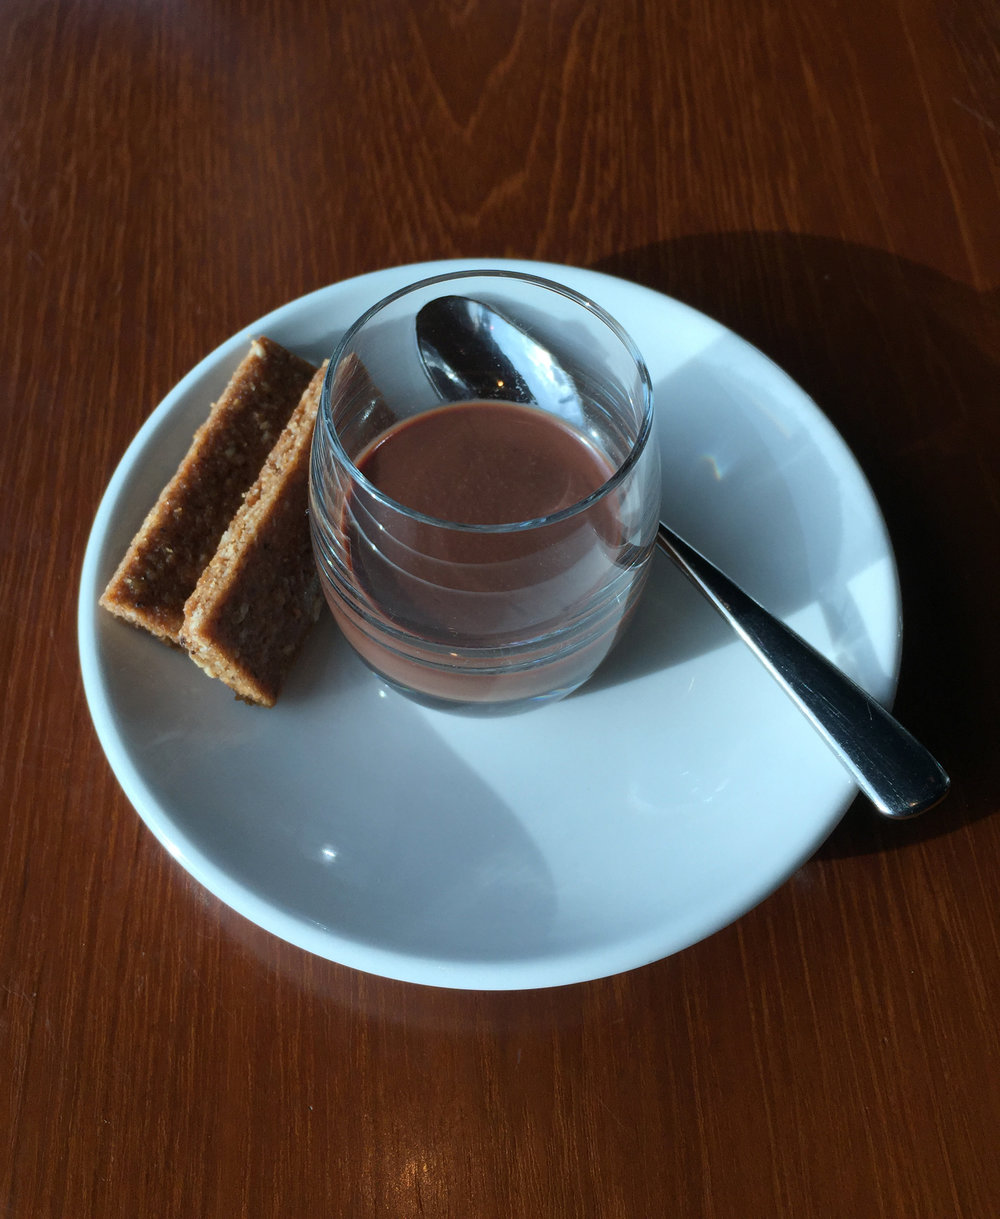 COMPLIMENTARY THIRD DESSERT - Chocolate ganache infused with French earl grey tea and carroway seed biscuits